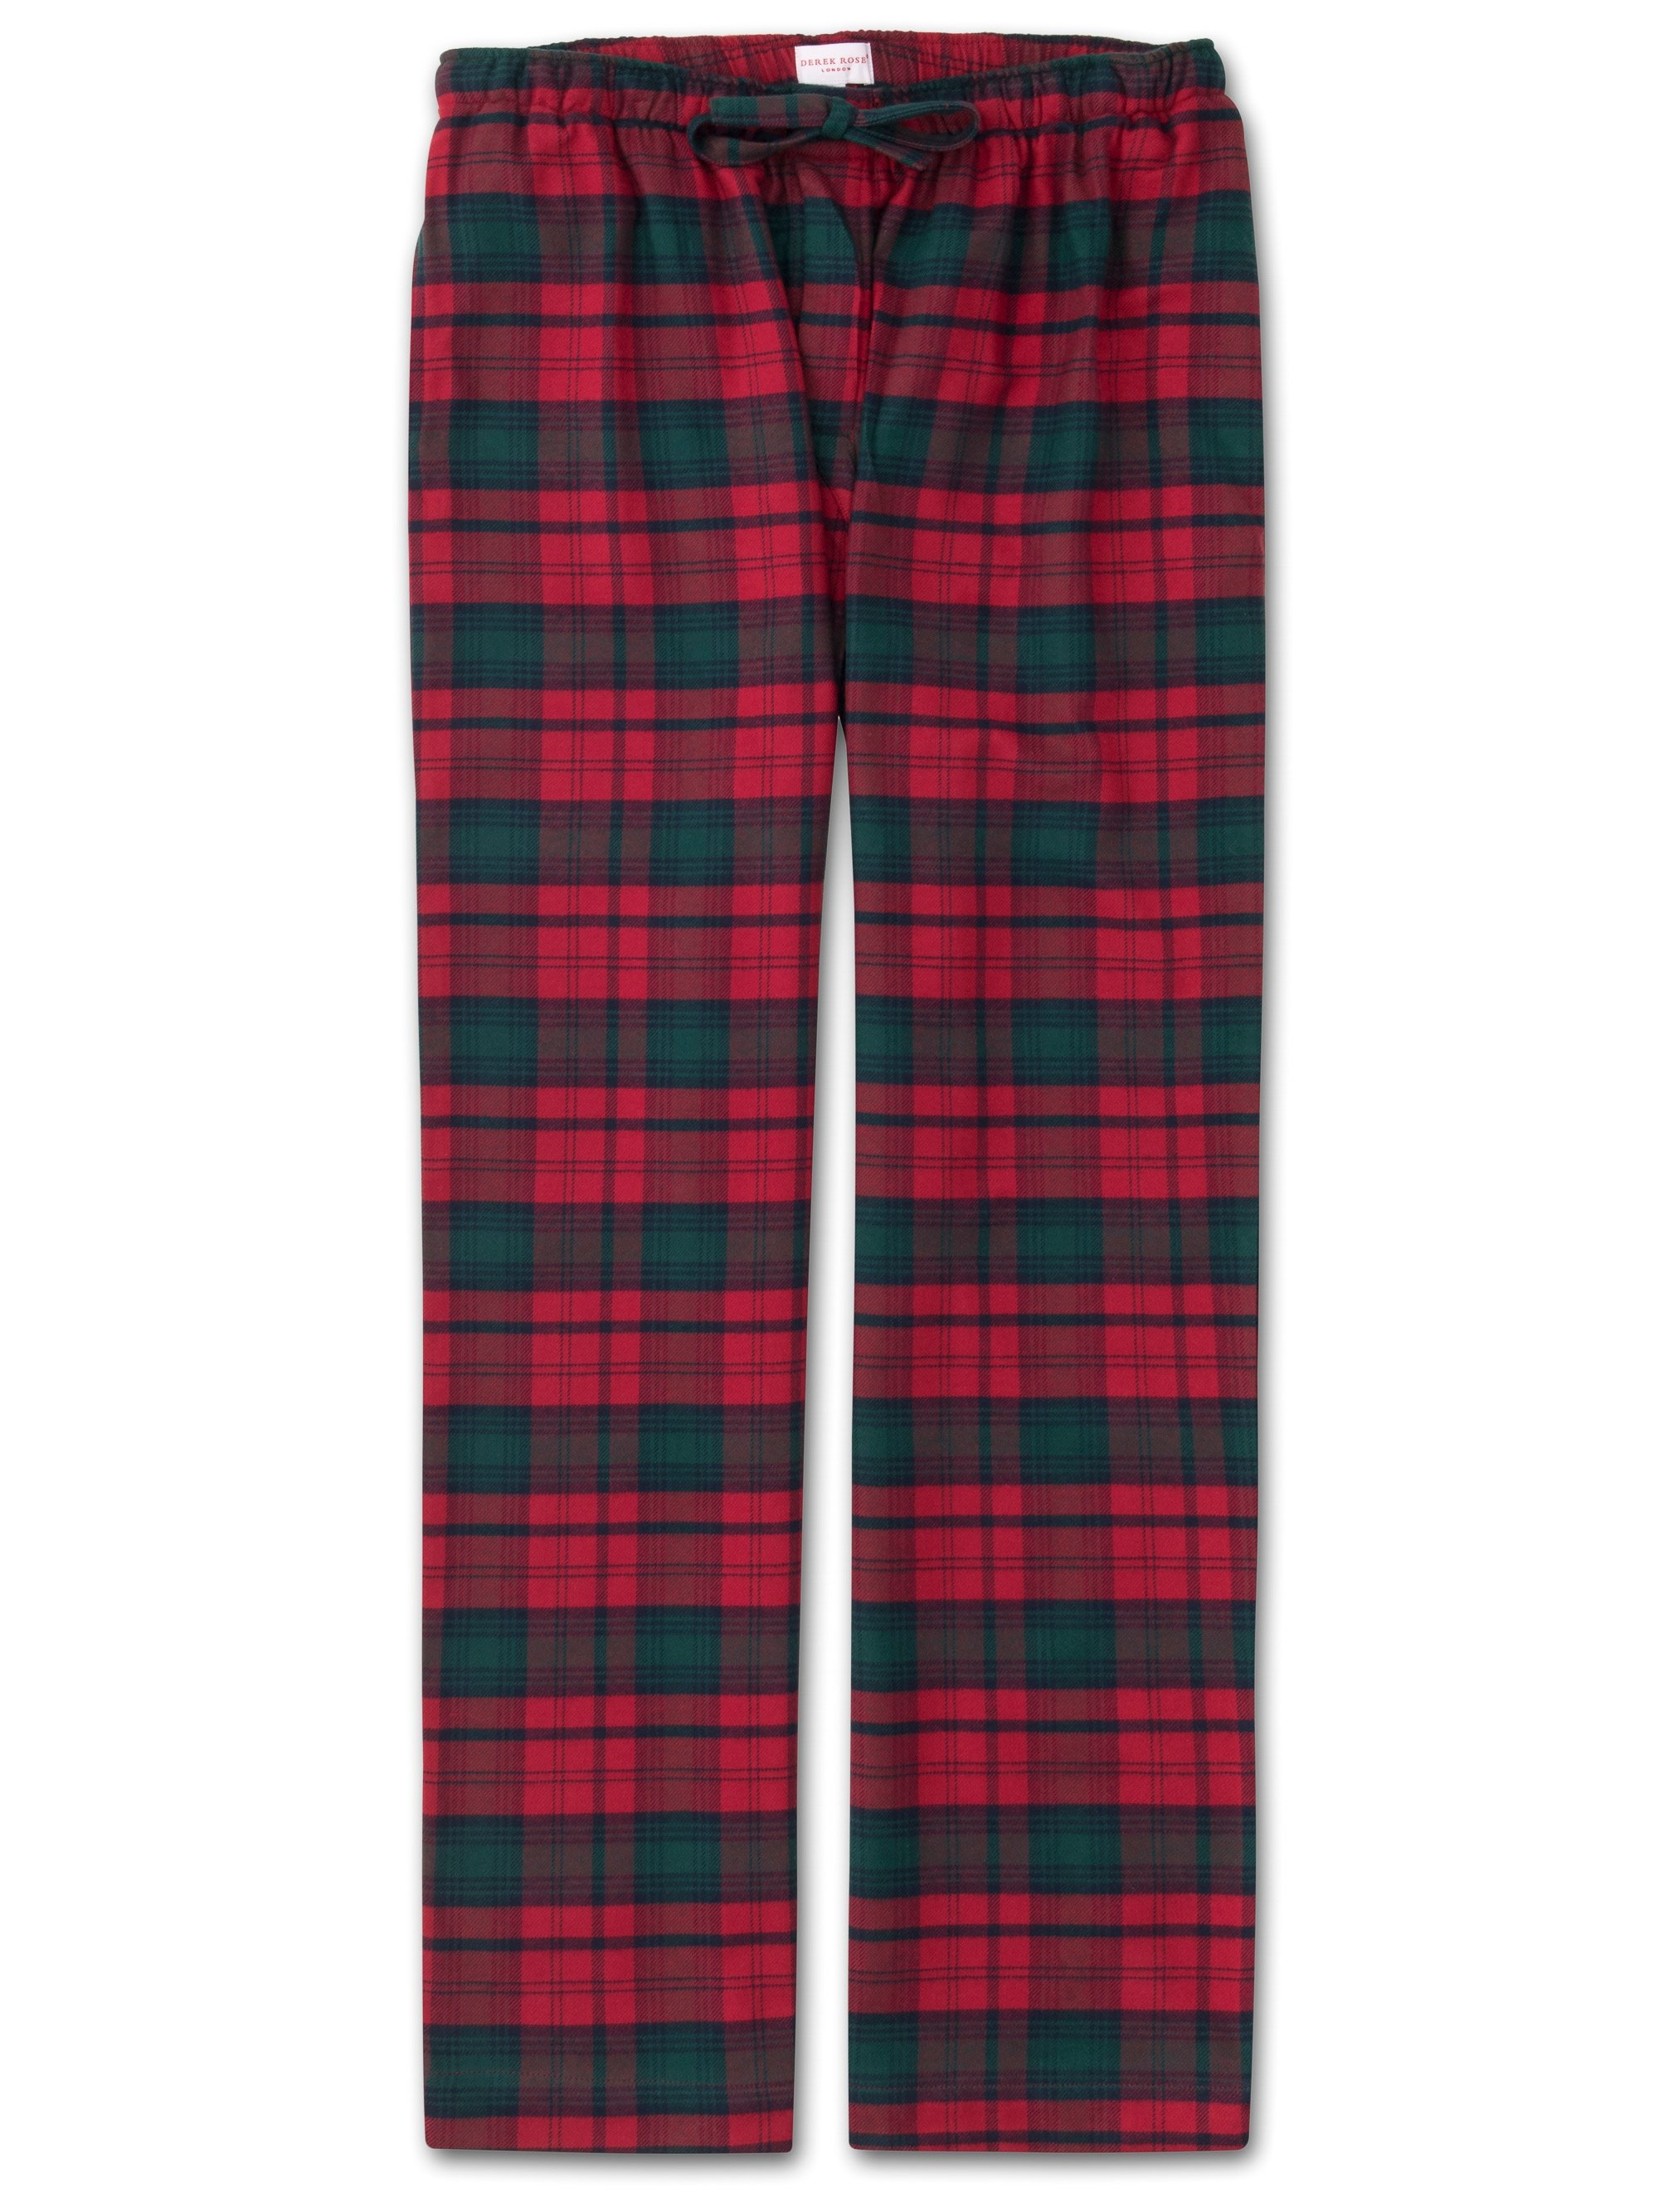 Men's Lounge Trousers Kelburn 9 Brushed Cotton Check Red